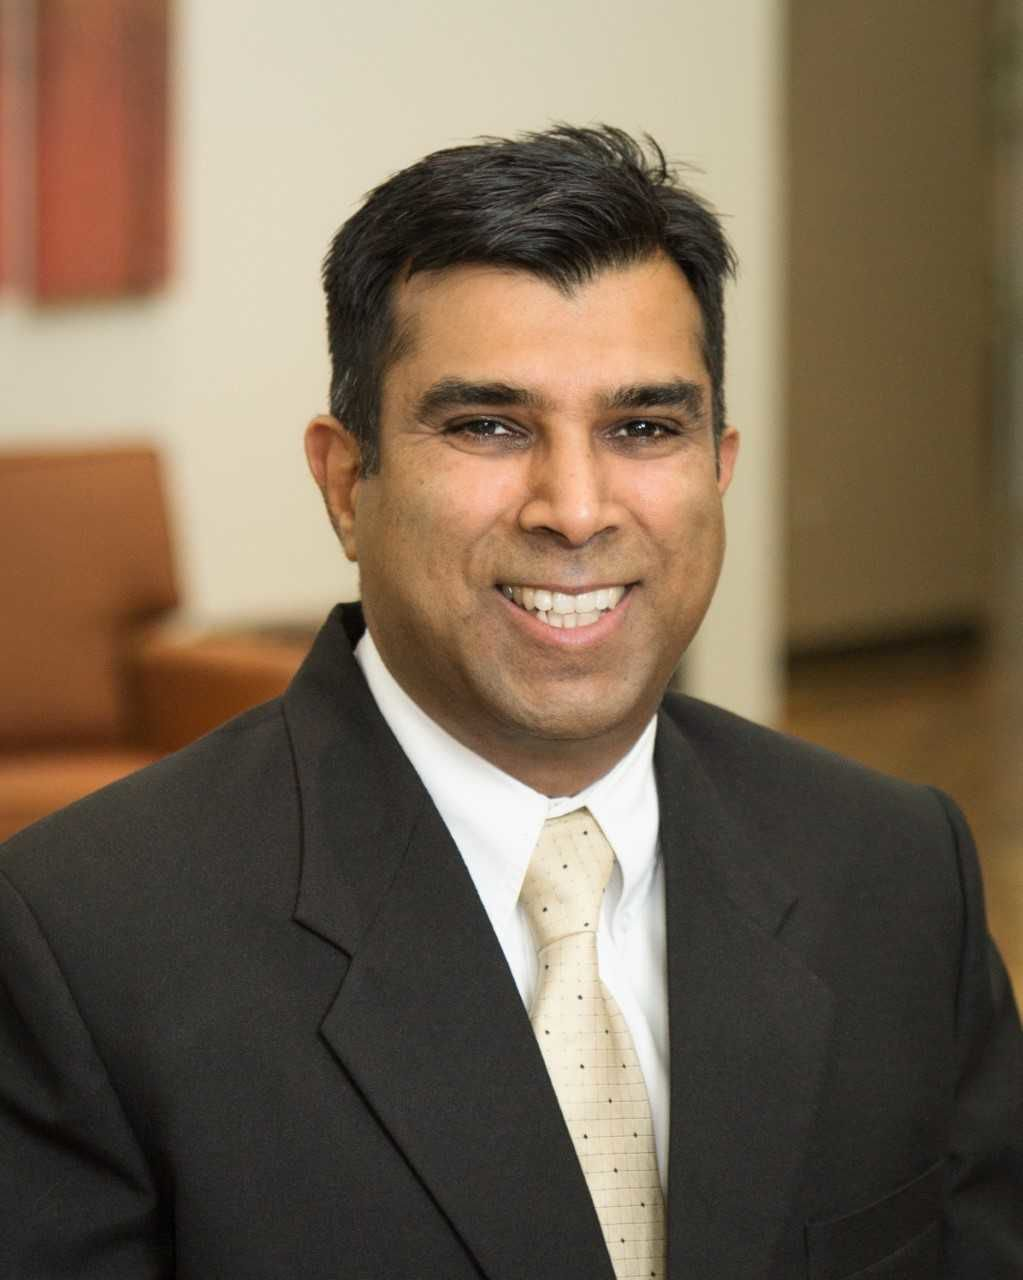 Sharma to seek re-election for Flower Mound council